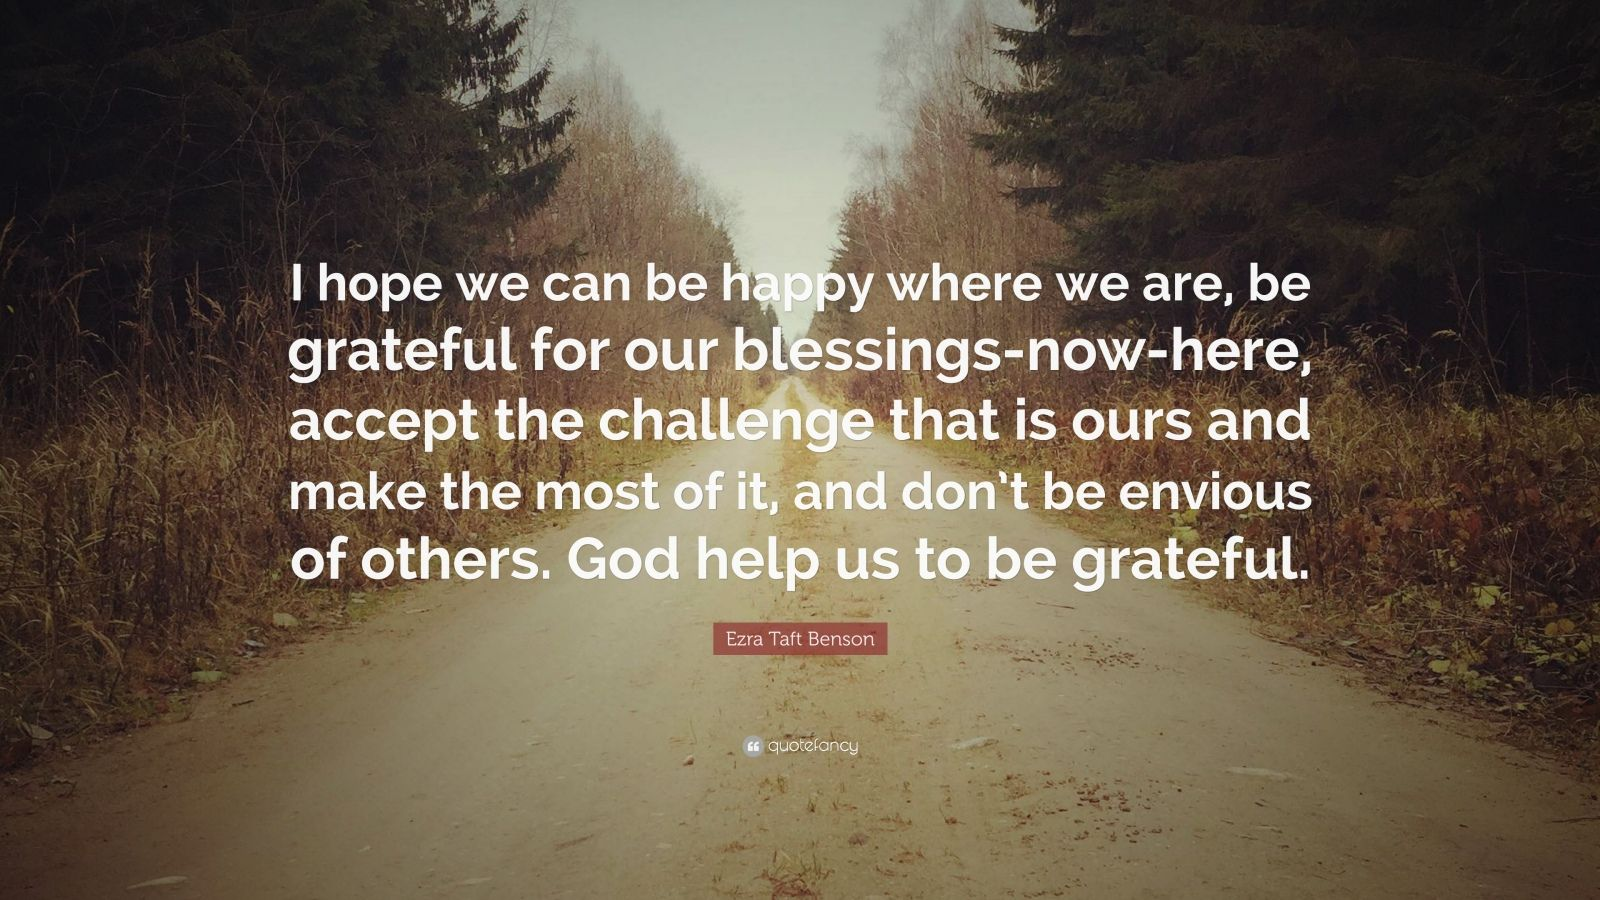 """Ezra Taft Benson Quote: """"I hope we can be happy where we are, be grateful for our blessings-now-here, accept the challenge that is ours and make the most of it, and don't be envious of others. God help us to be grateful."""""""